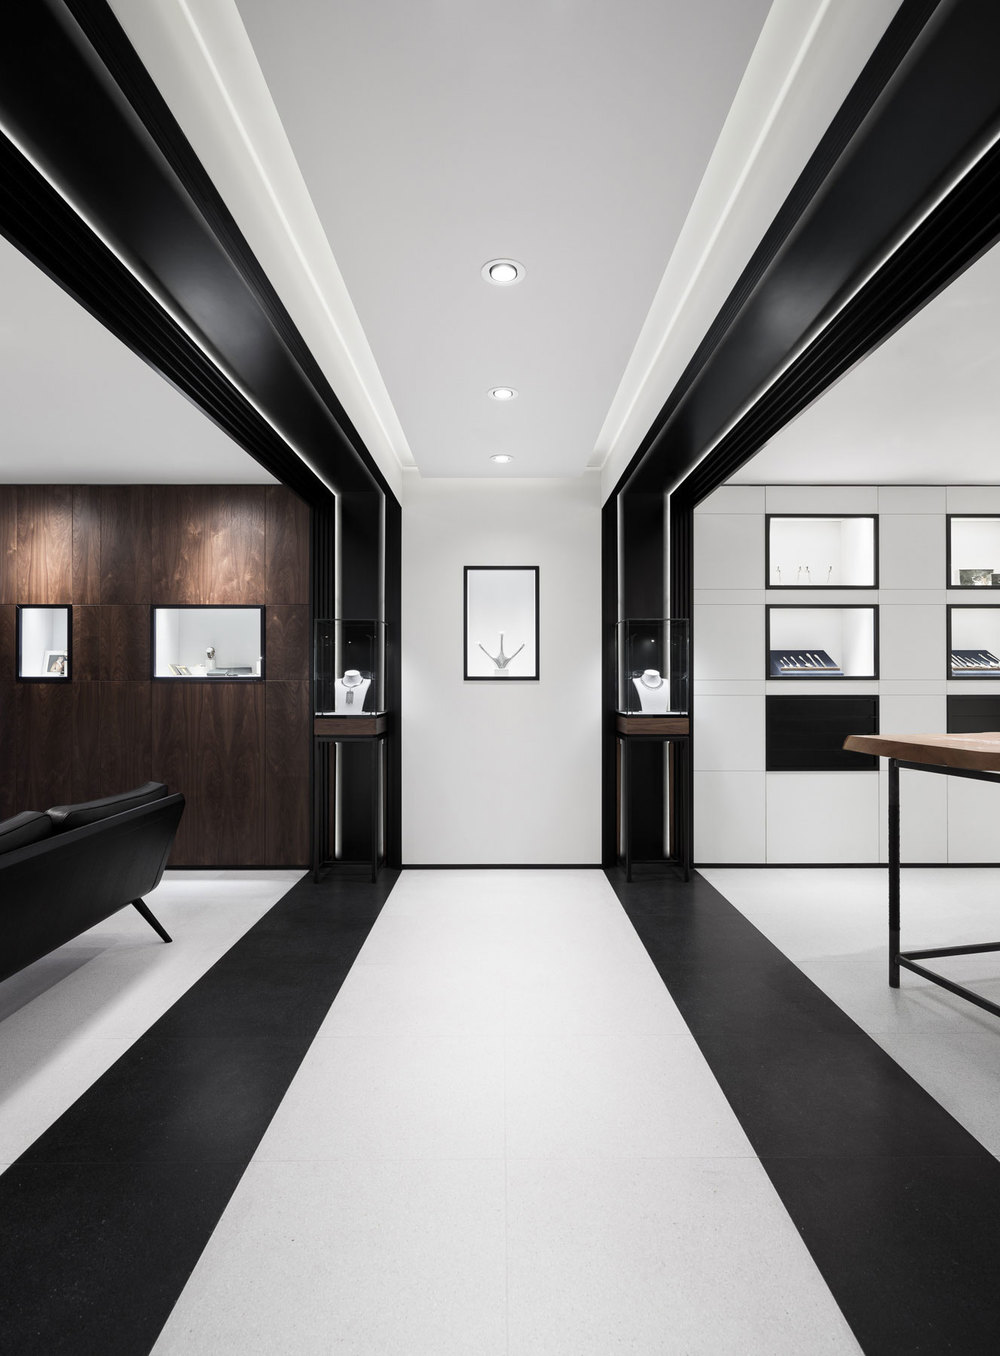 David thulstrup designs symmetrical space for georg jensen for As interior design